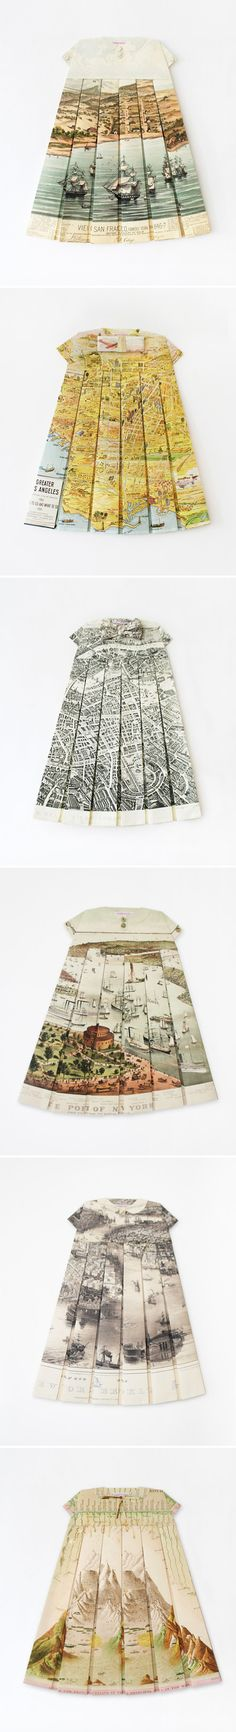 ELISABETH LECOURT - vintage maps folded into tiny dresses <3